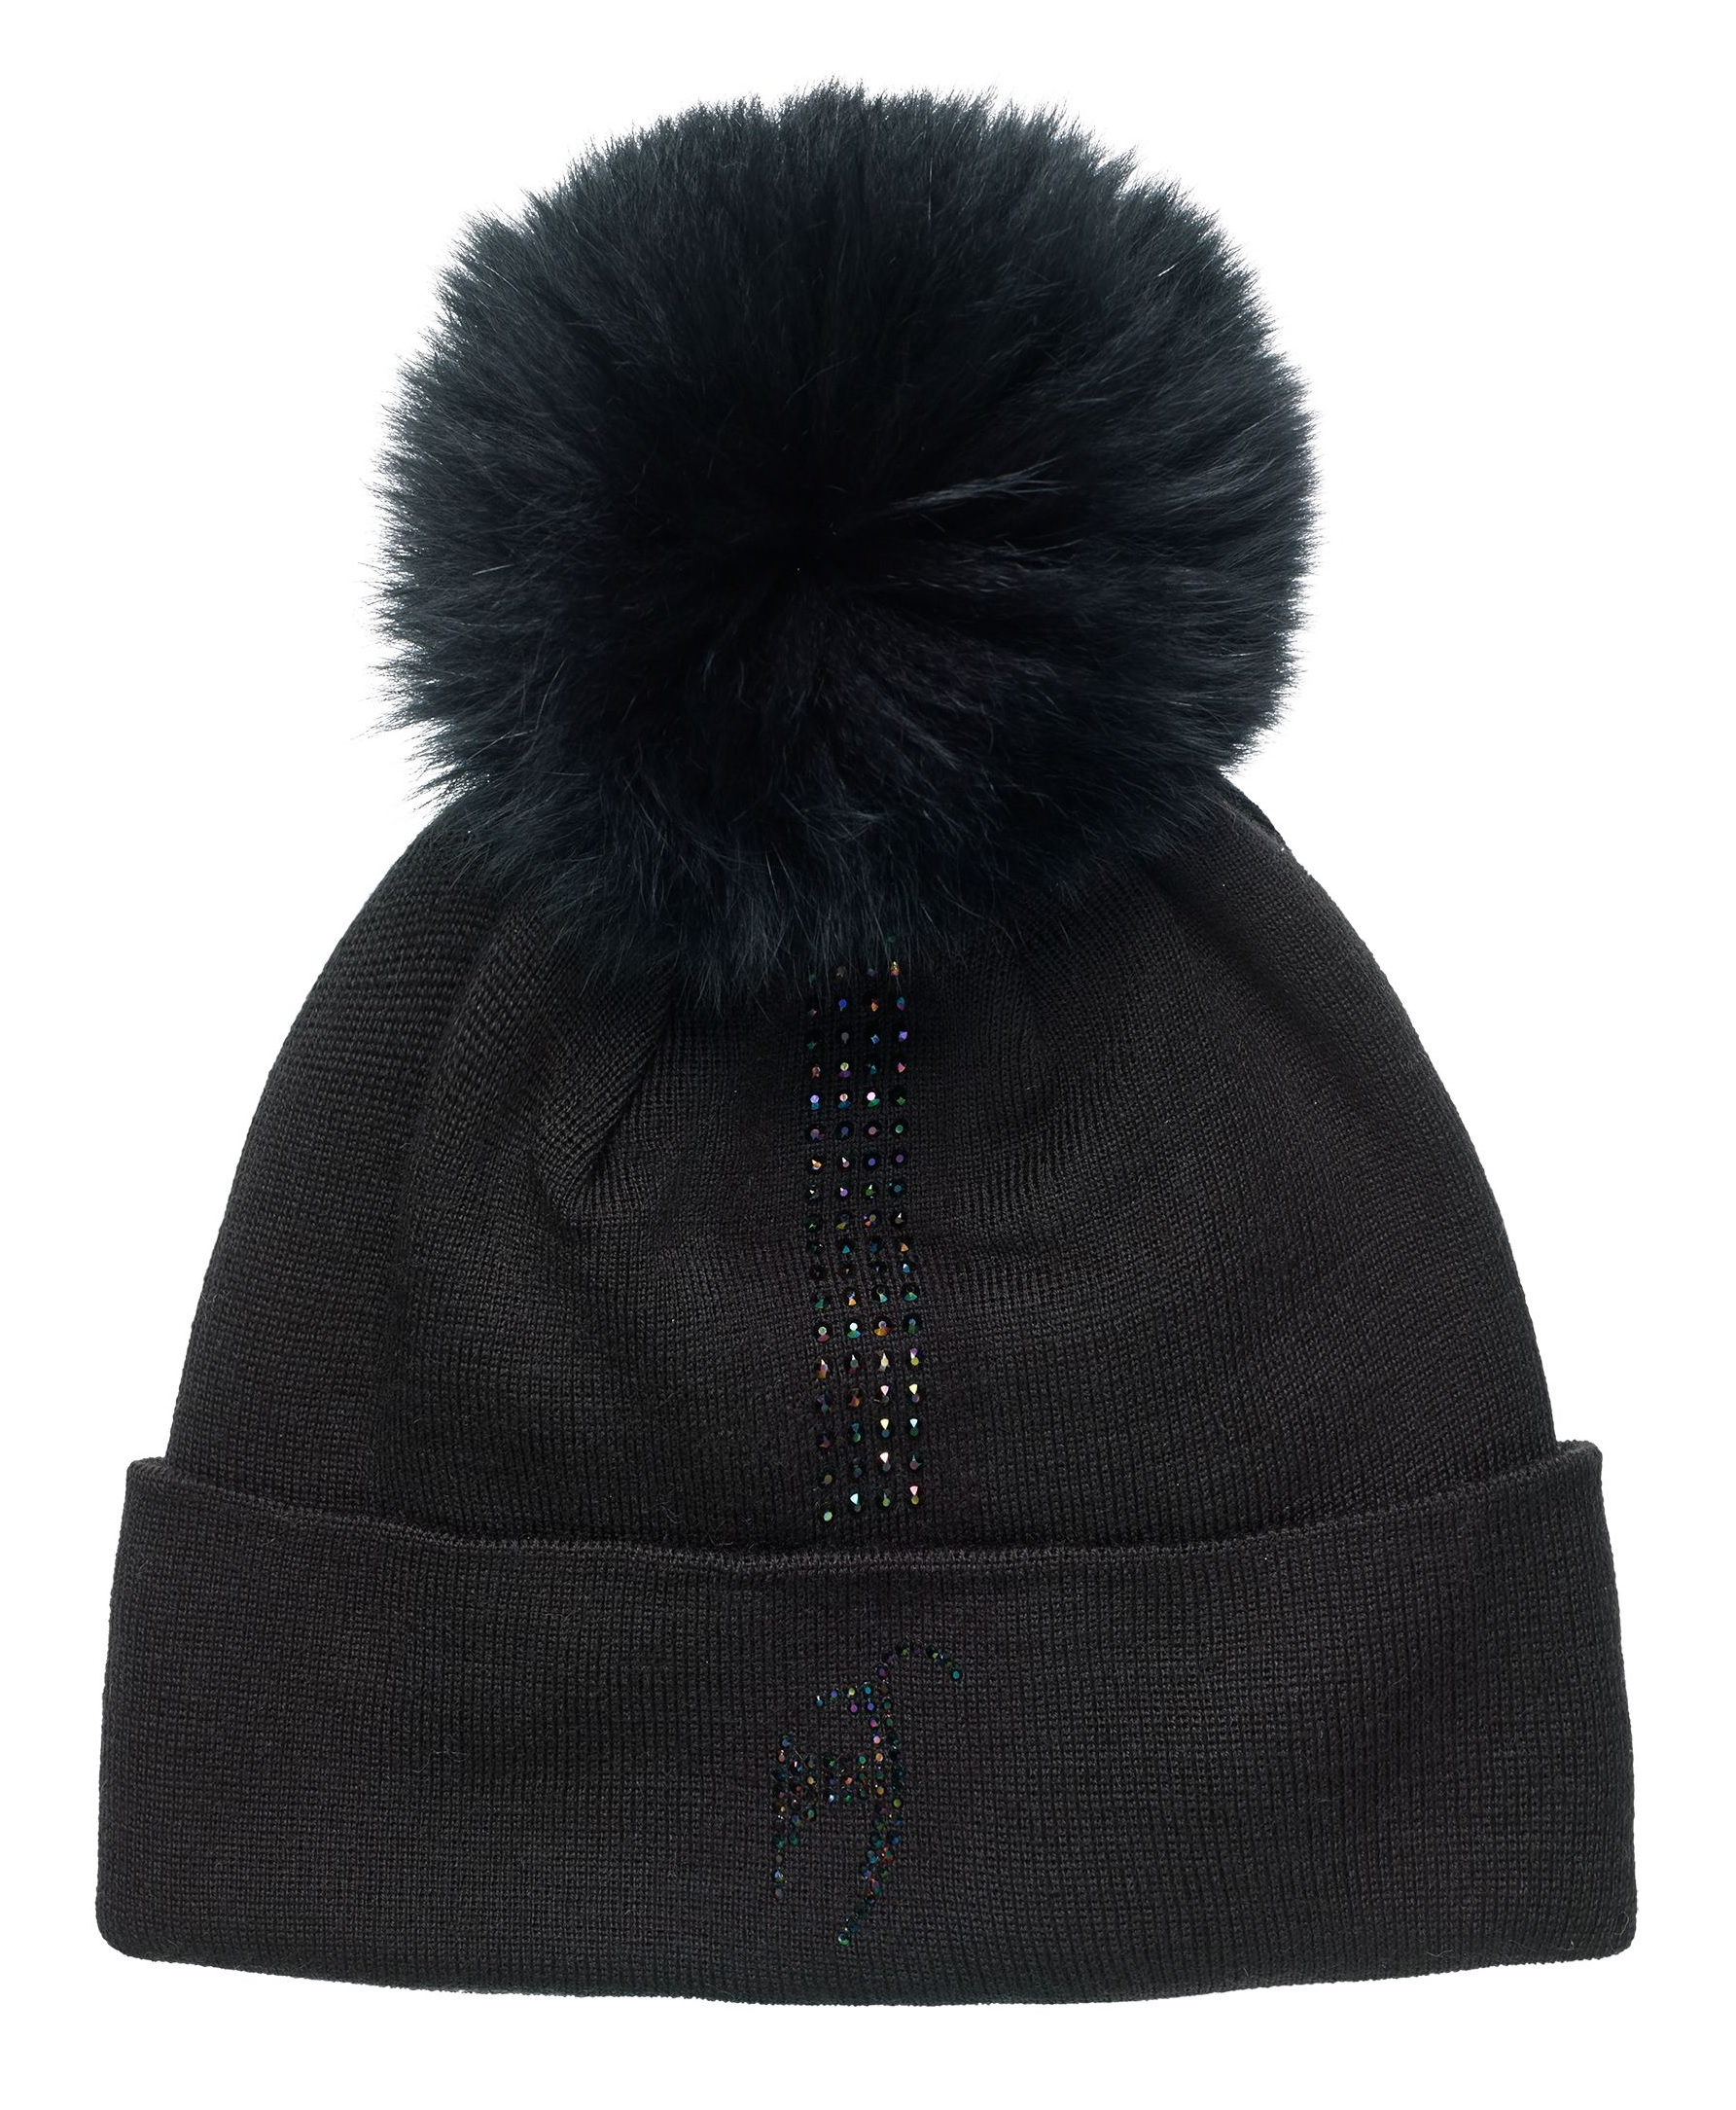 Шапка женская Toni Sailer Elise Fur Black - Фото 1 большая